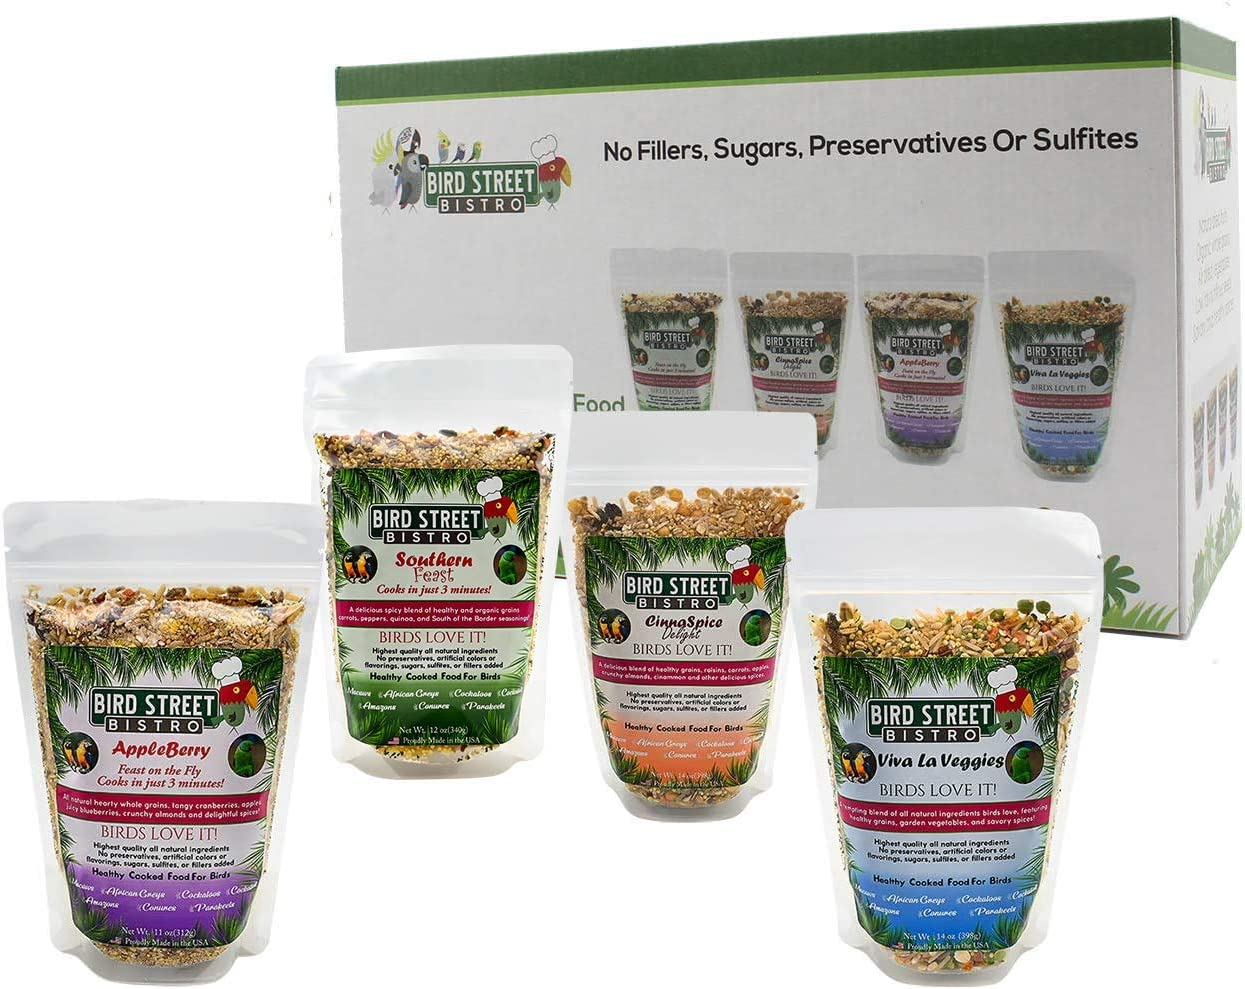 Bird Street Bistro Parrot Food Sample Pack Cooks in as Little as 3 min | All Natural & Organic Grains and Legumes, Healthy Fruits, Vegetables, and Spices - No Fillers or Additives (Large 86 oz.)